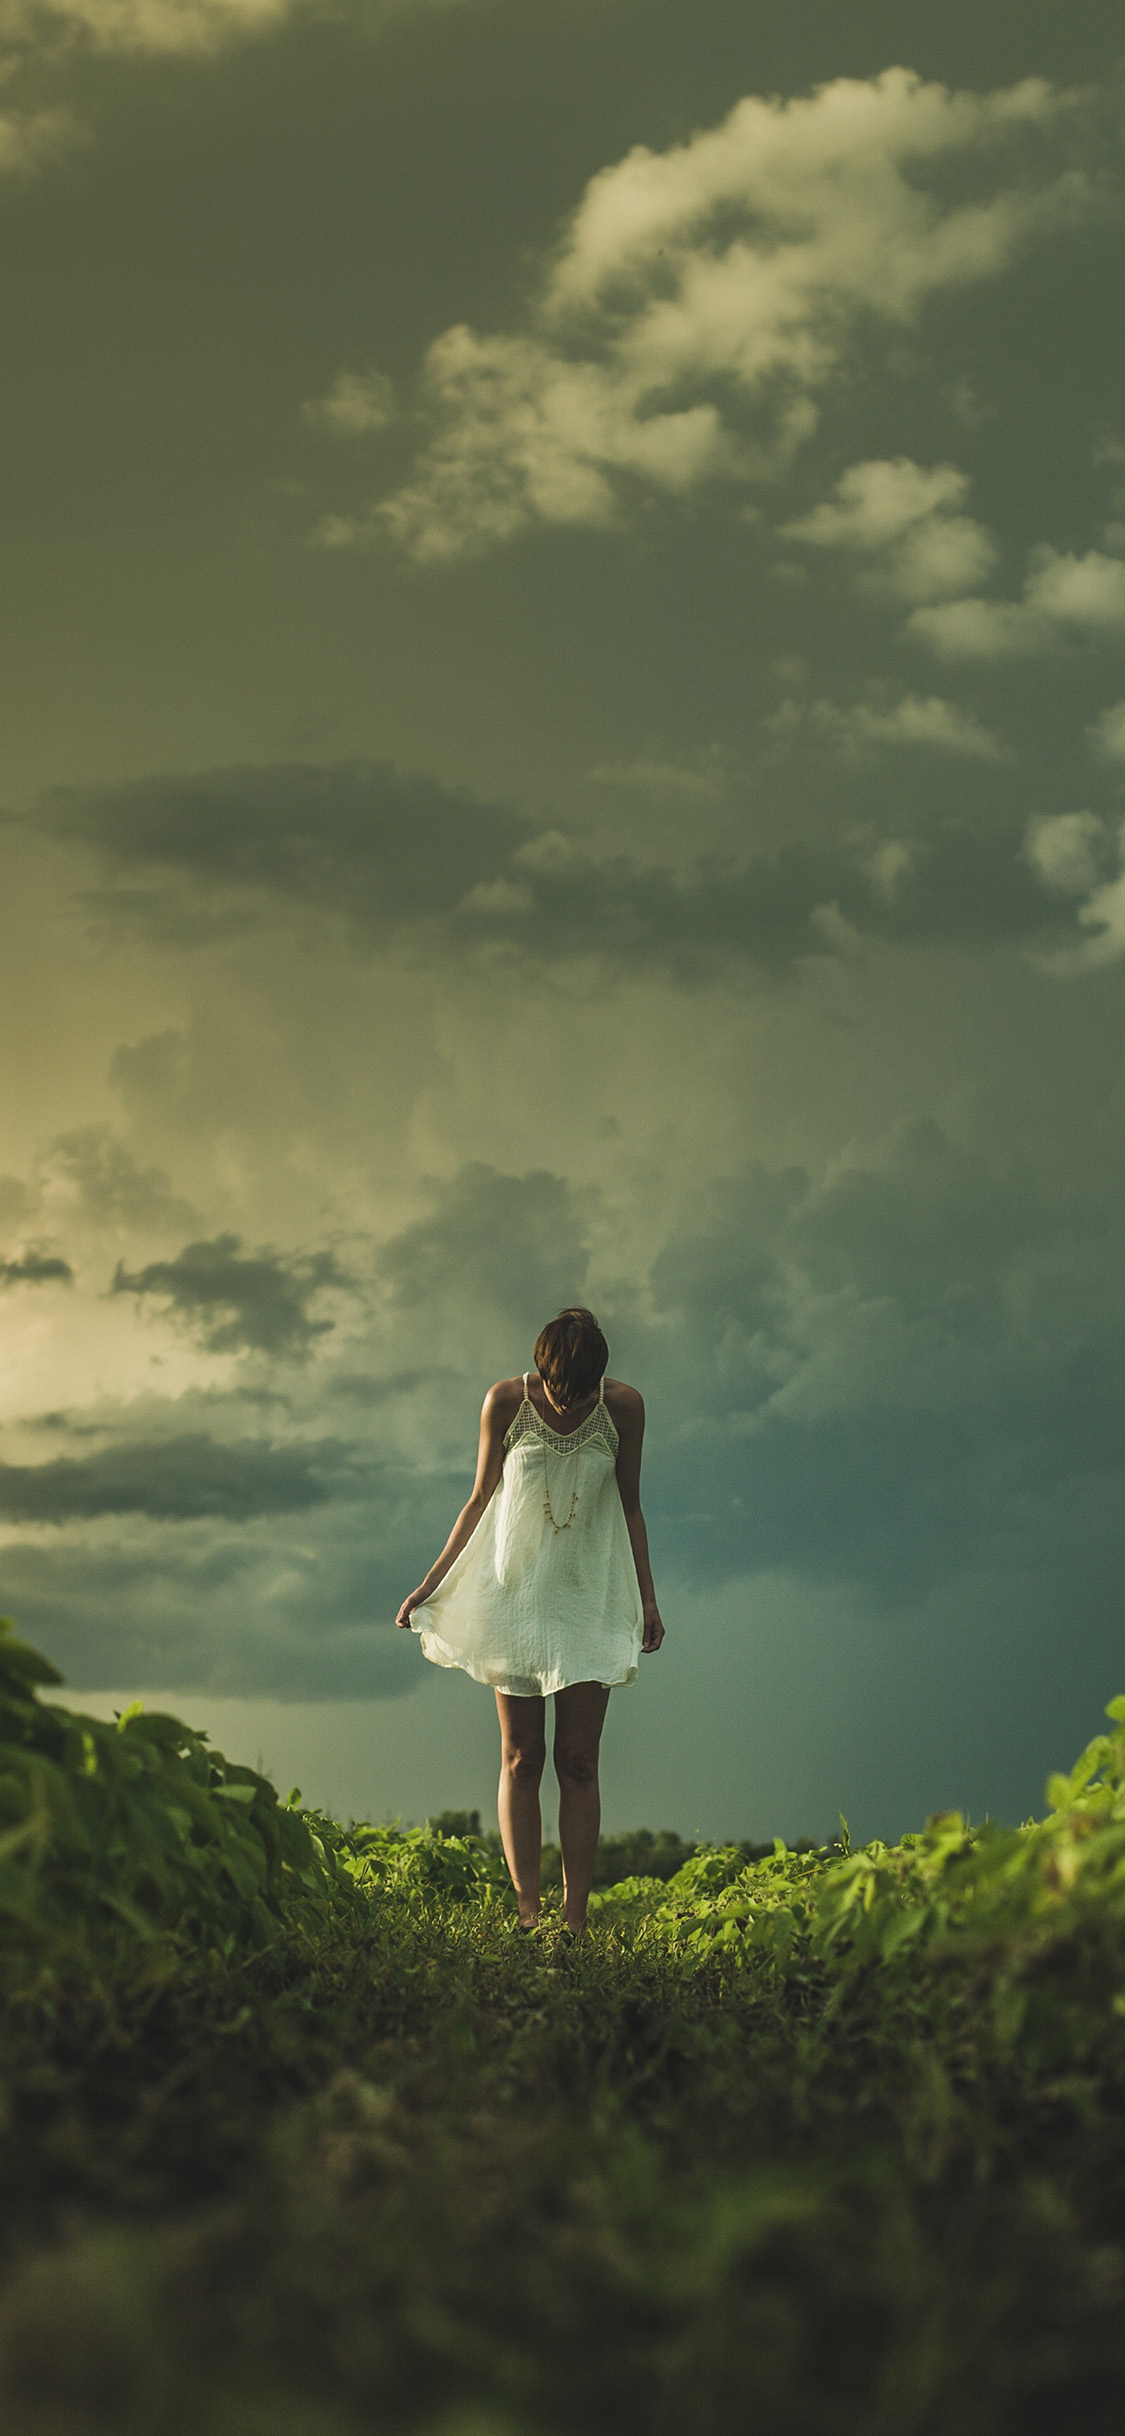 iPhonexpapers.com-Apple-iPhone-wallpaper-nz86-field-girl-cloud-summer-dress-nature